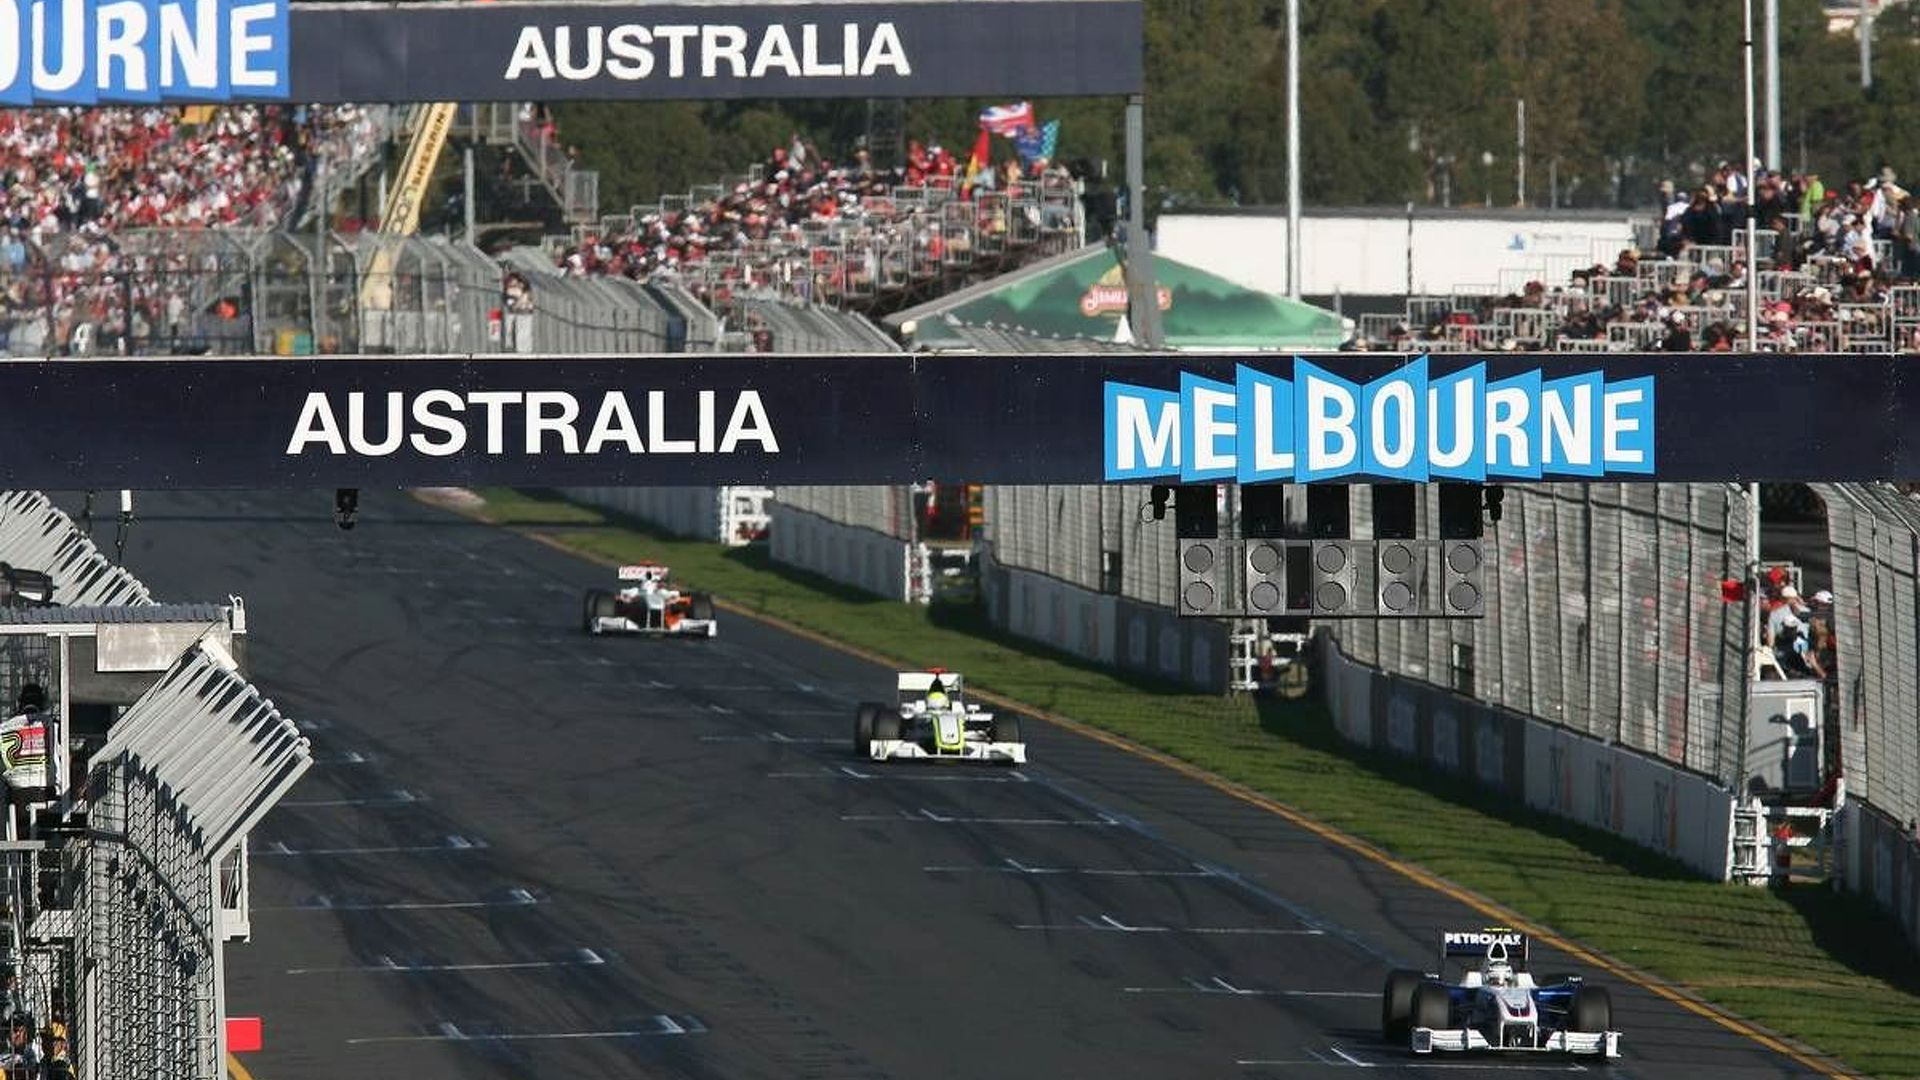 FIA commissions Australian GP relocation study